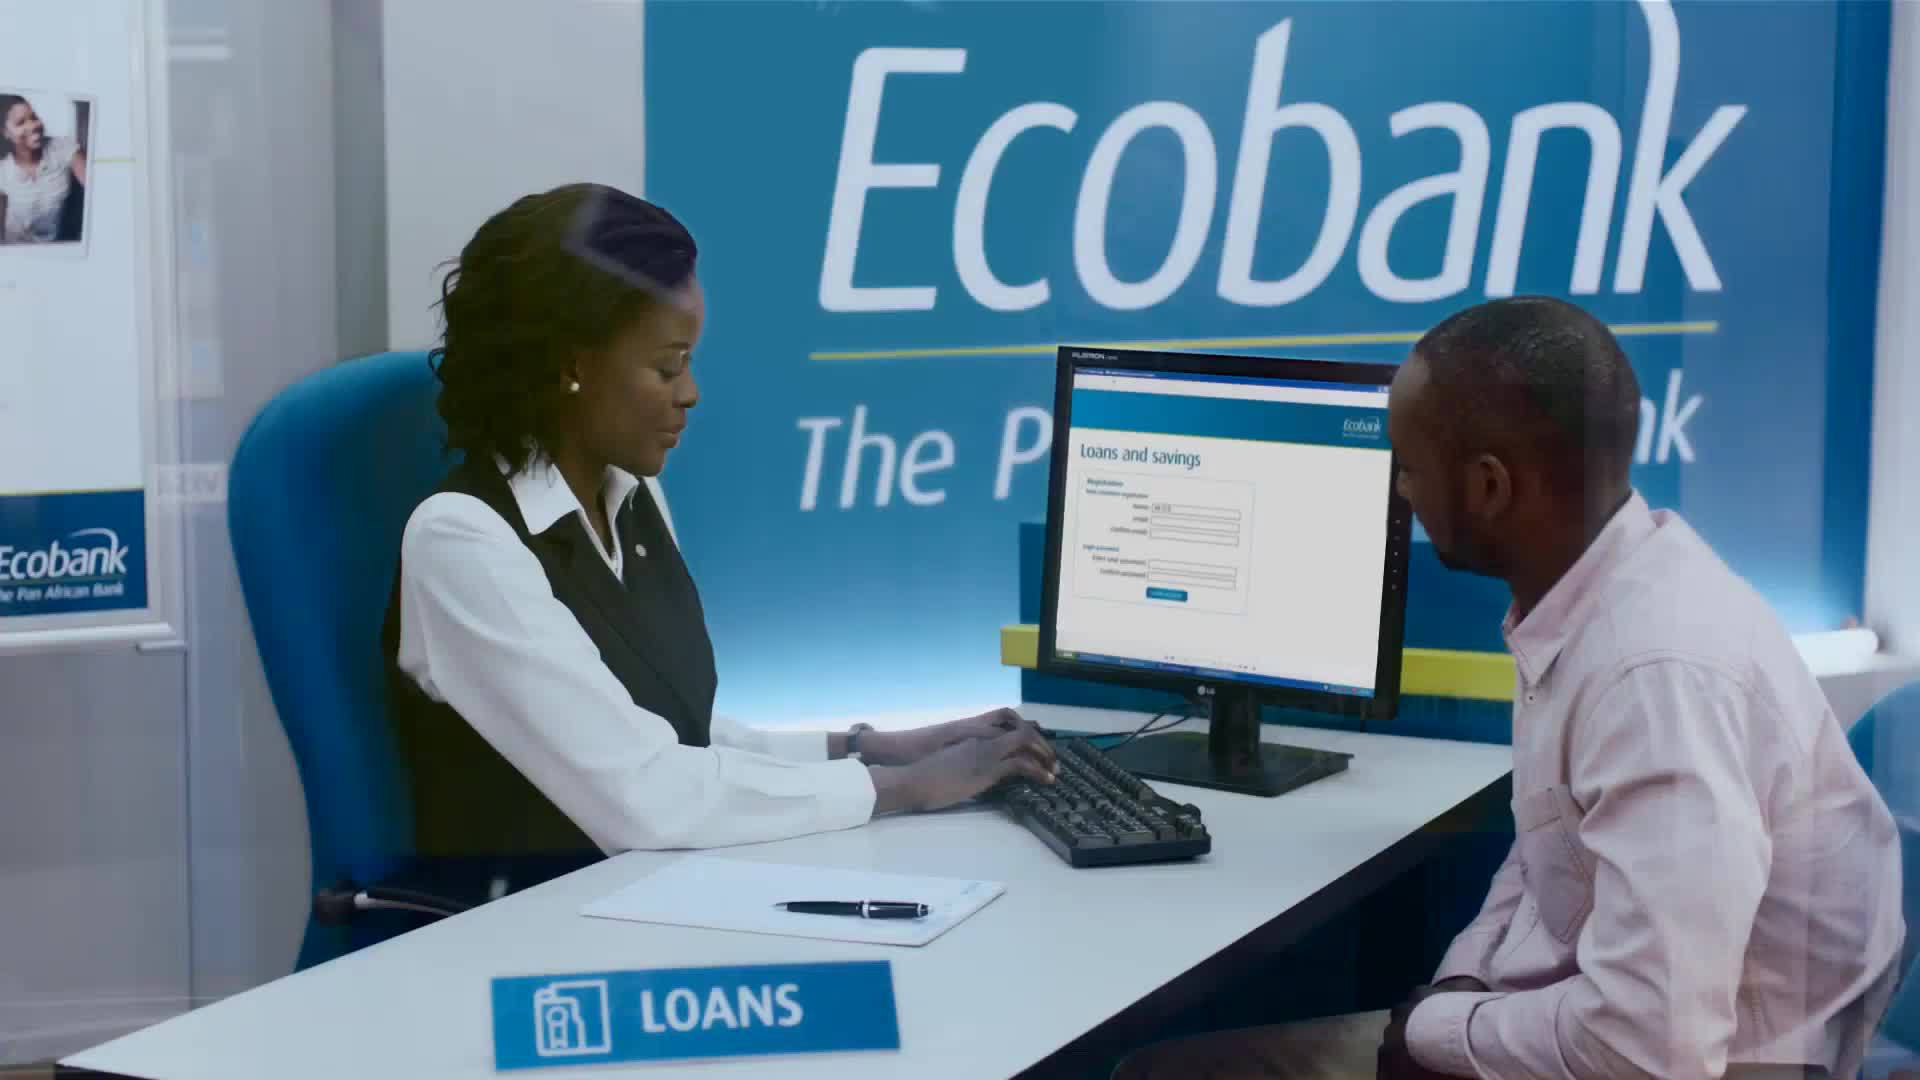 Ecobank converts 819.4 million preference shares to equities